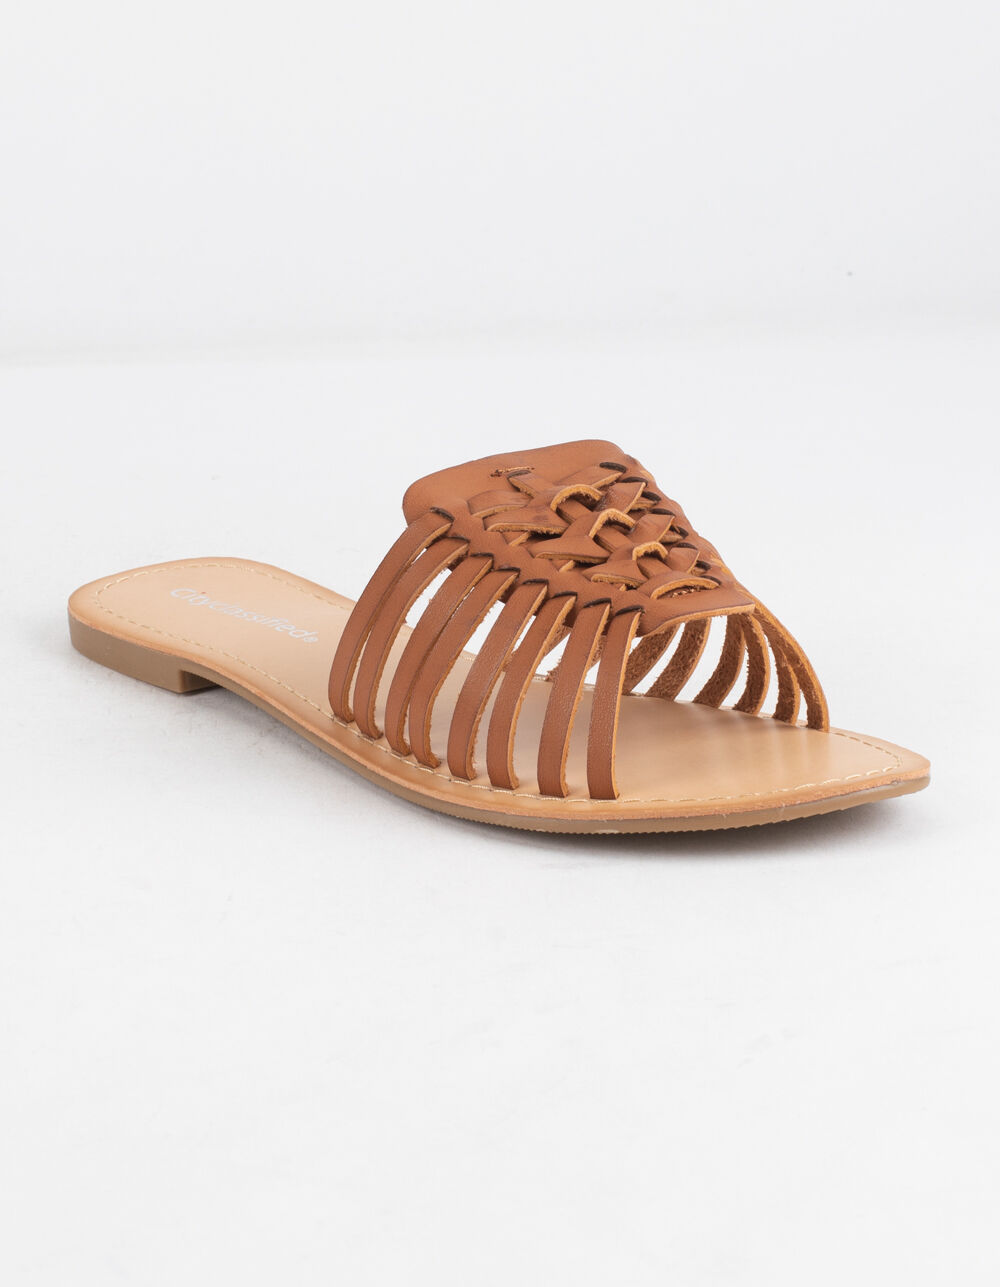 Image of CITY CLASSIFIED BASKET WEAVE TAN SANDALS